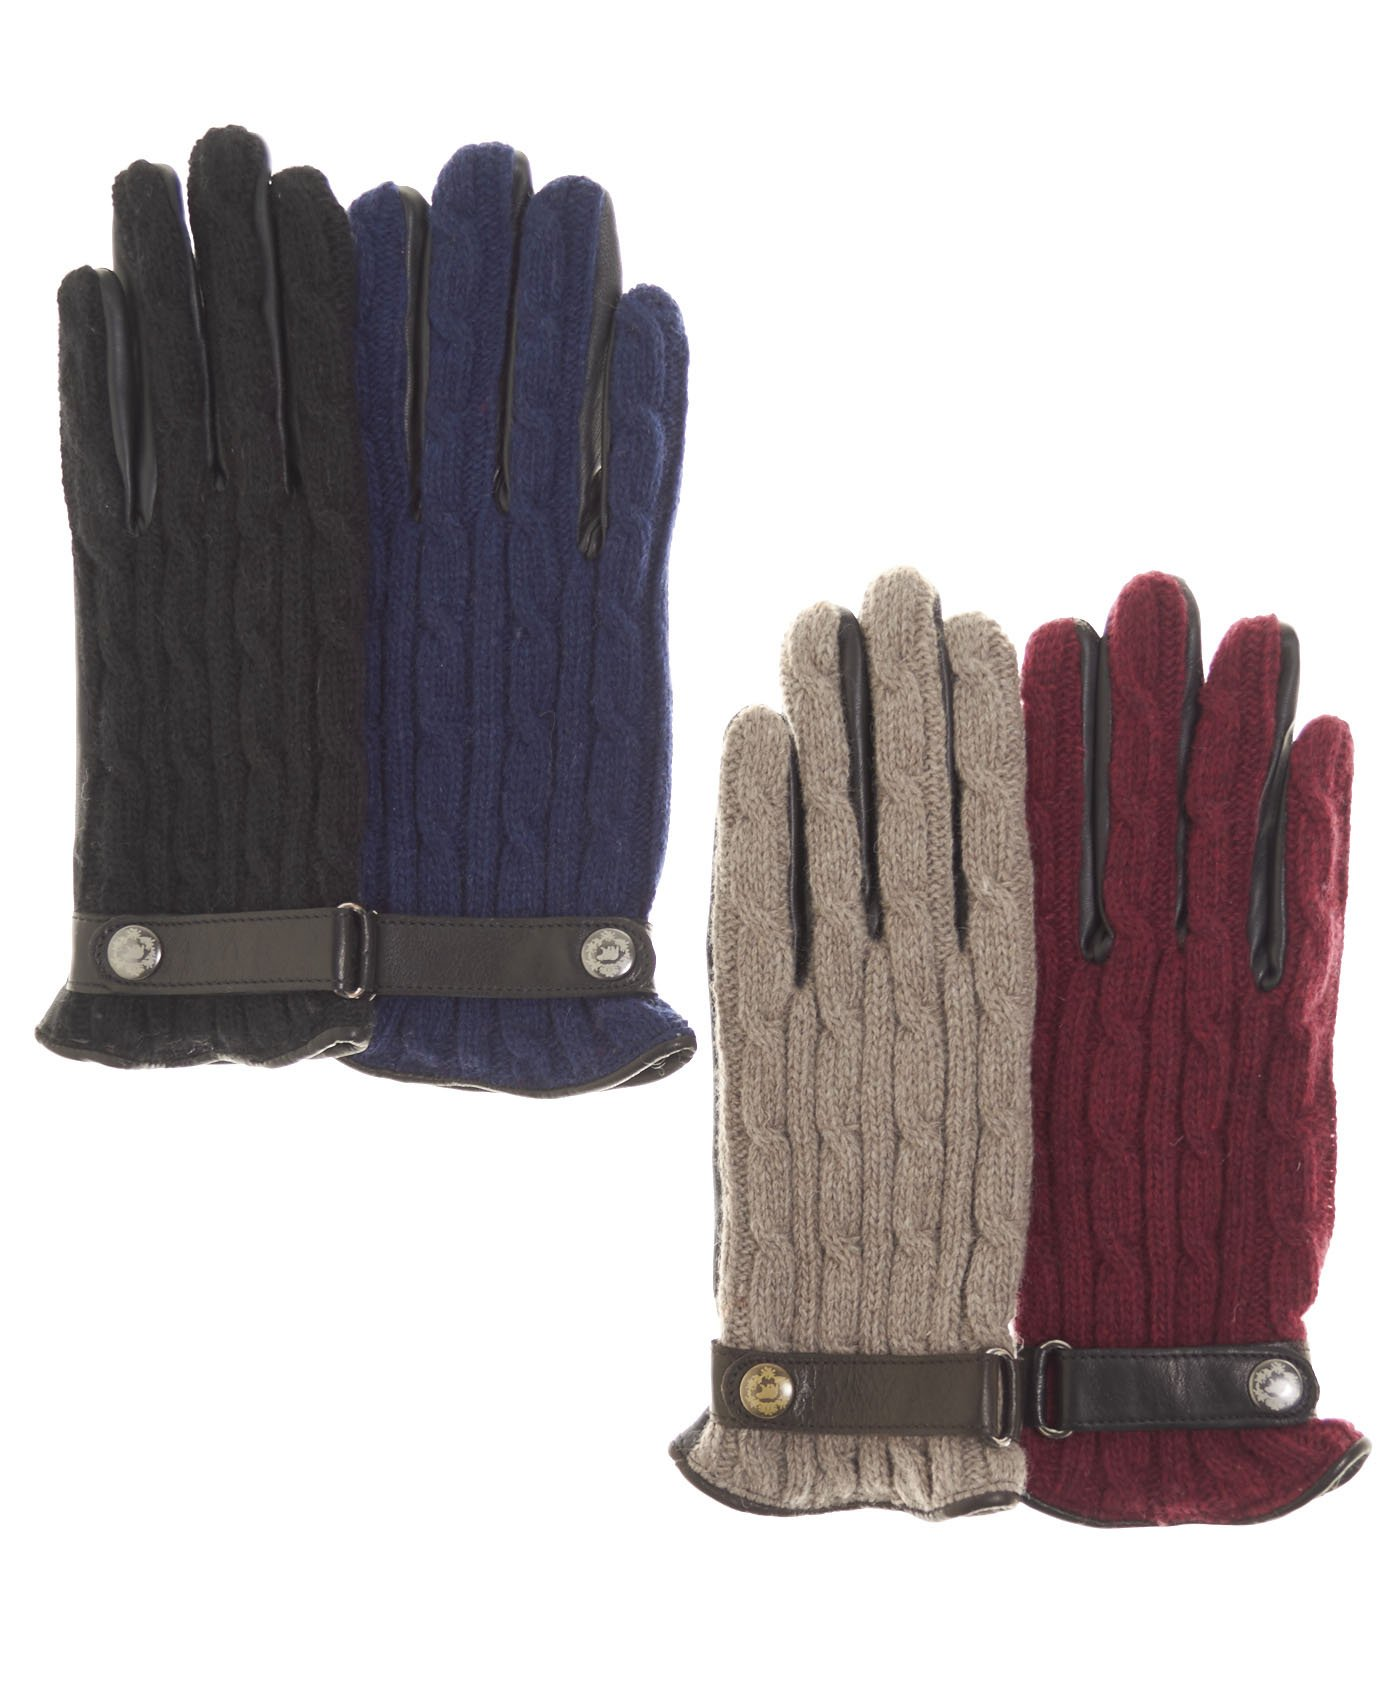 Fratelli Orsini Women's Italian Cable Knit Cashmere and Leather Winter Gloves Size 6 1/2 Color Black